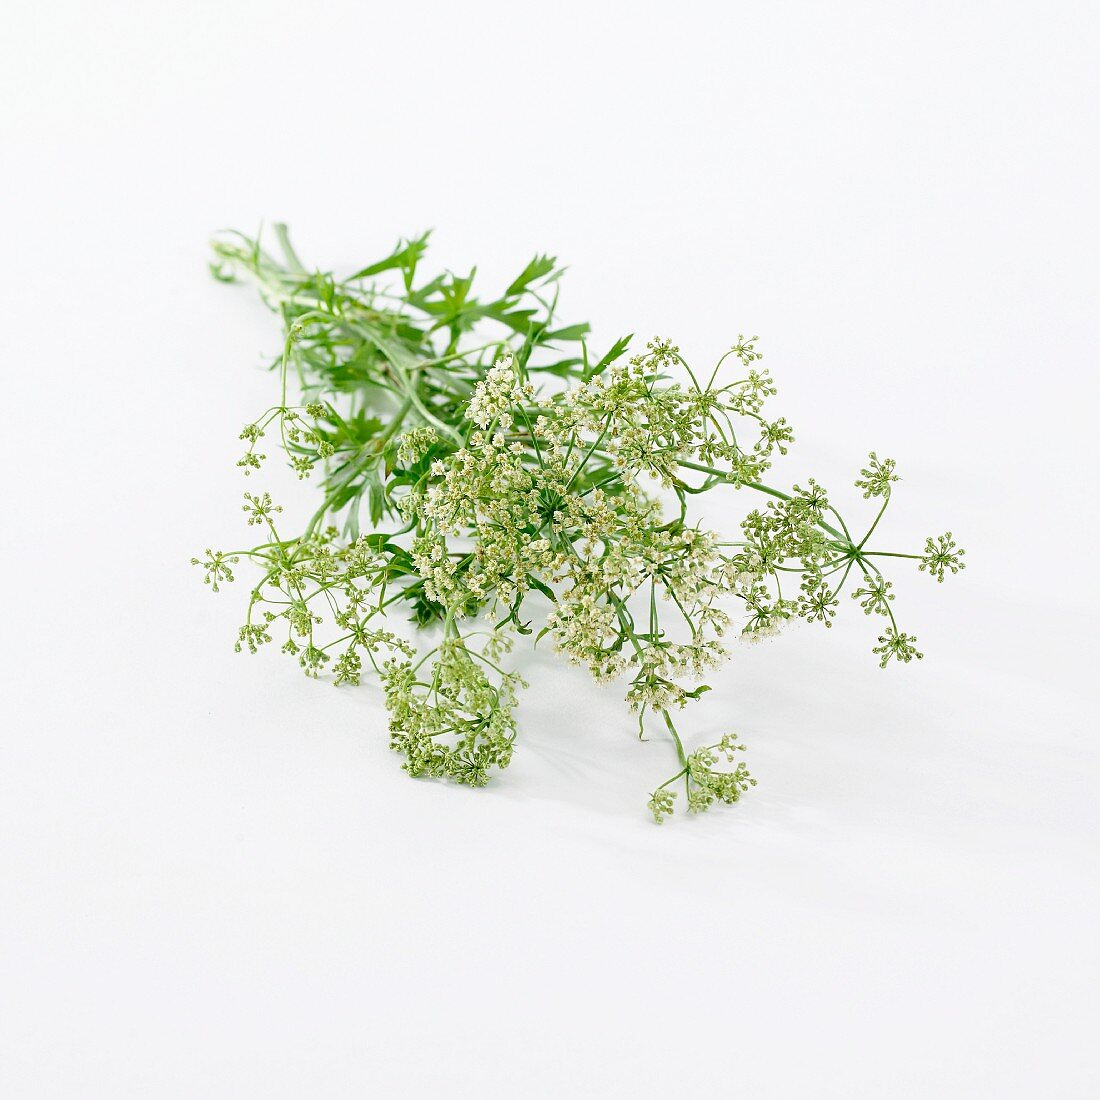 Anis with flowers (Pimpinella Anisum)